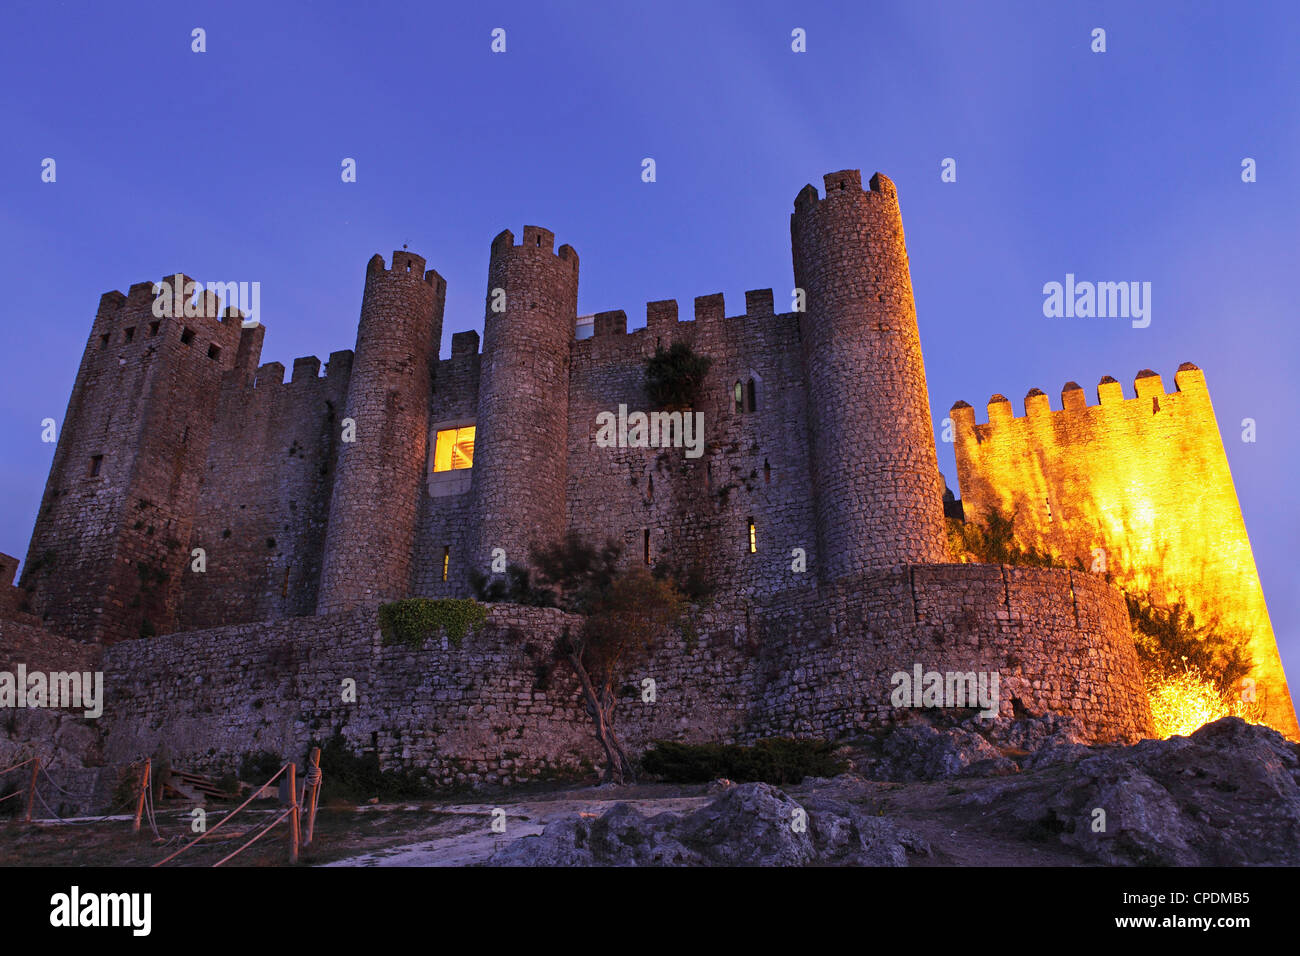 Obidos castle, today used as a luxury Pousada hotel, partially illuminated at night, Obidos, Estremadura, Portugal, - Stock Image